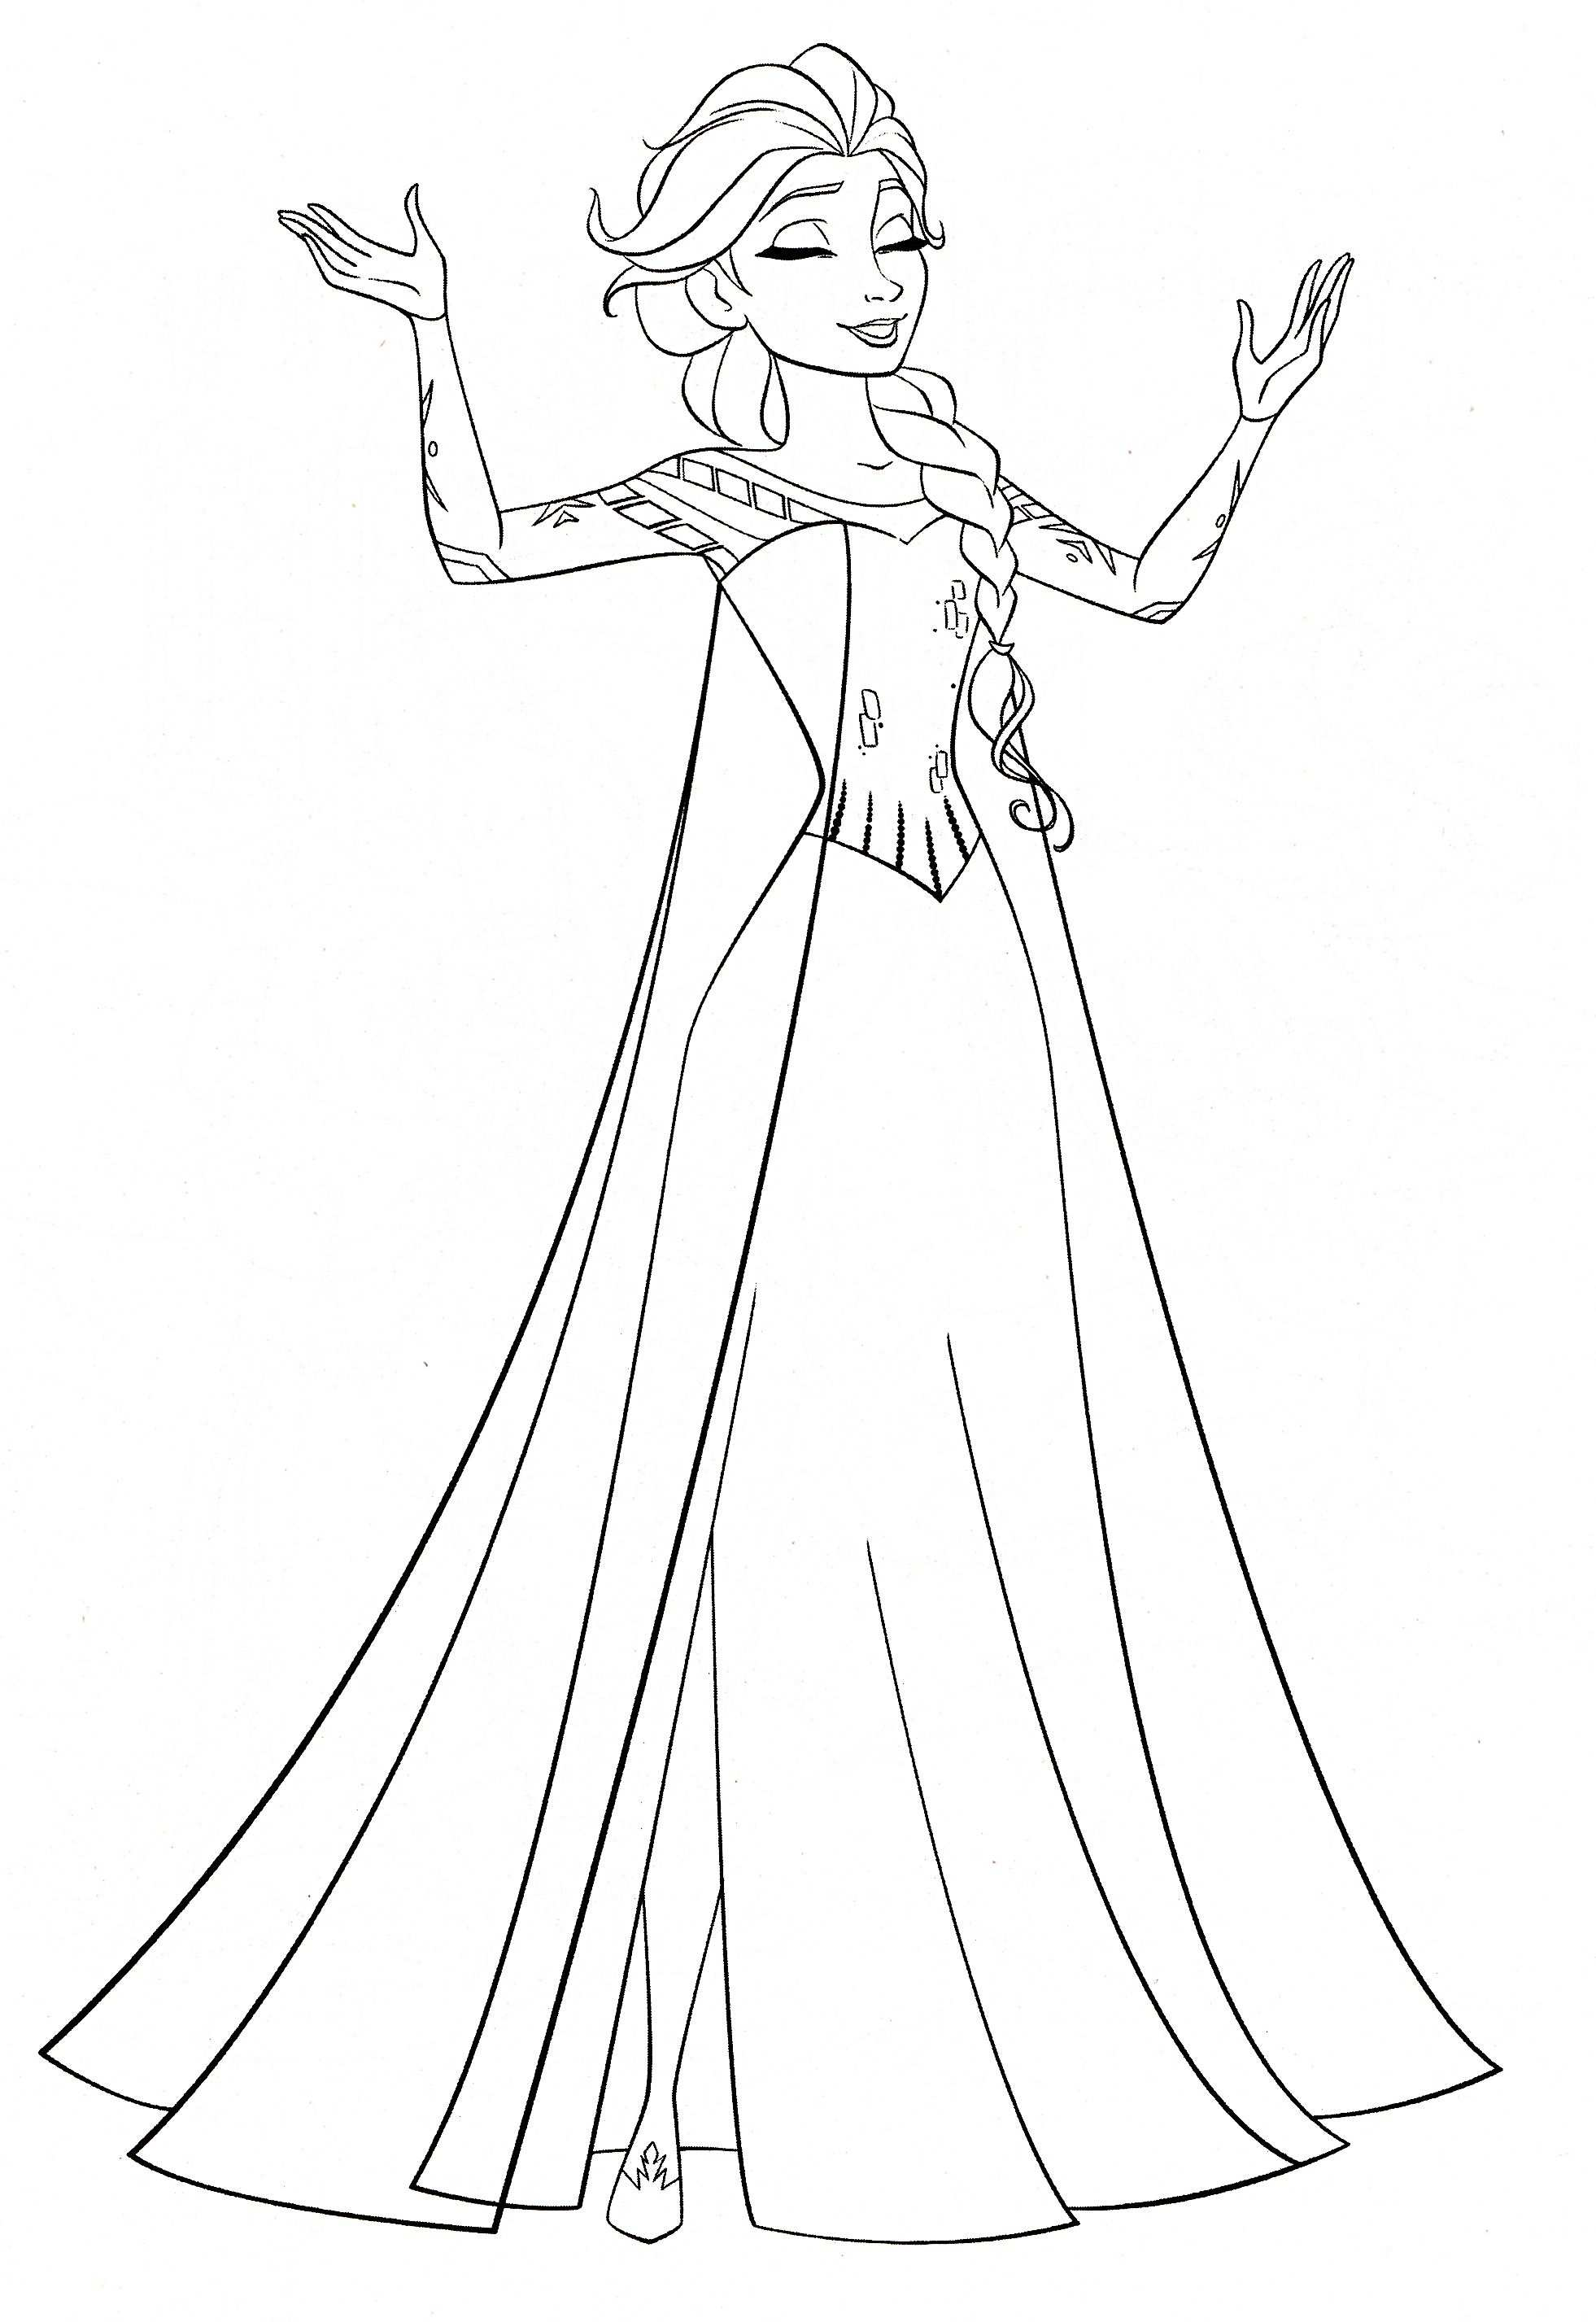 Kleurplaat Elsa Elsa Coloring Pages Frozen Coloring Pages